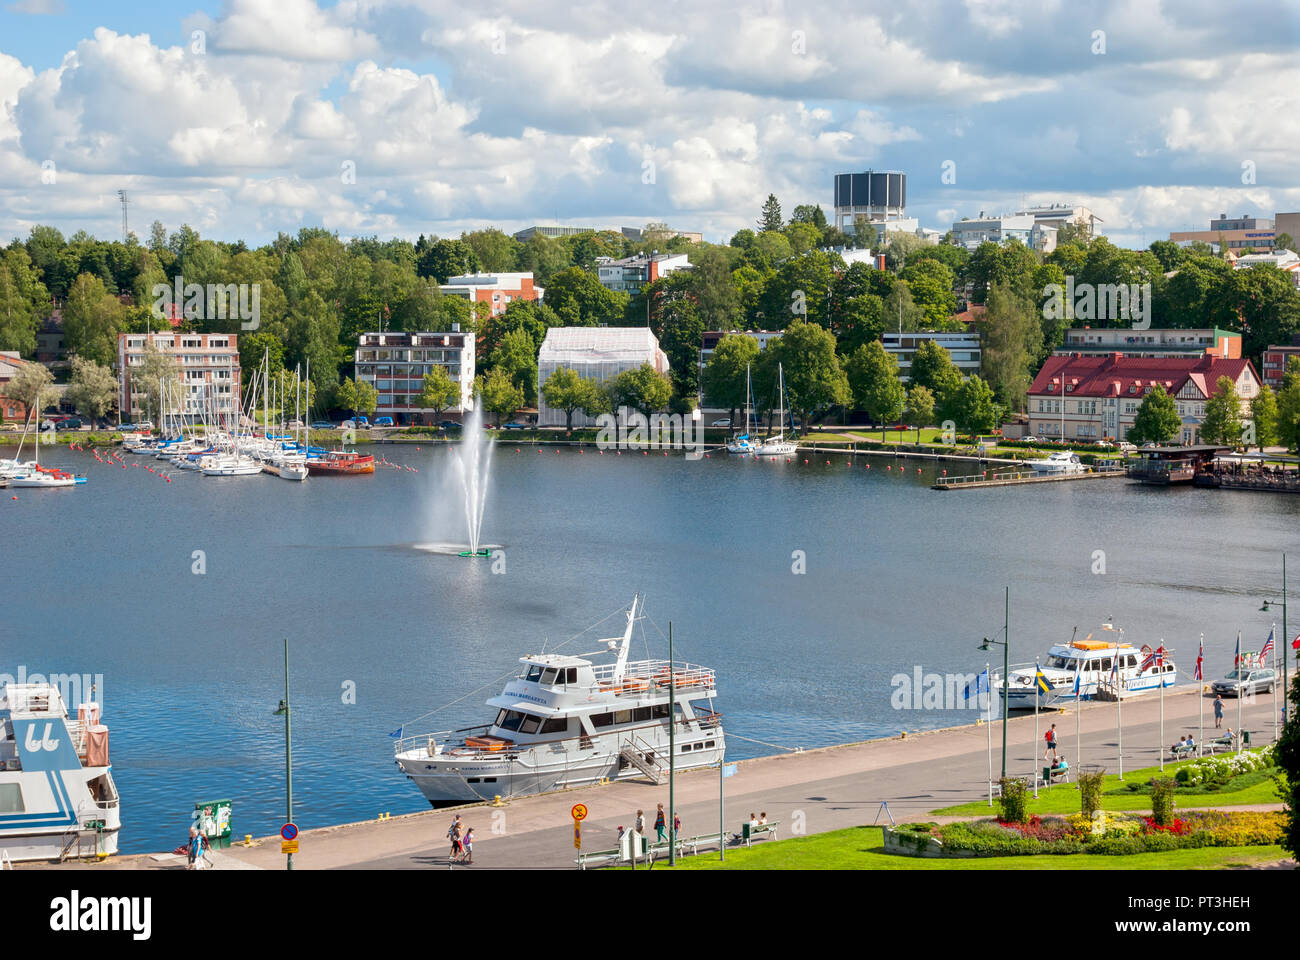 LAPPEENRANTA, FINLAND - AUGUST 8, 2016: Summer landscape with fountain and boats in Lappeenranta Harbor on Saimaa Lake. Stock Photo